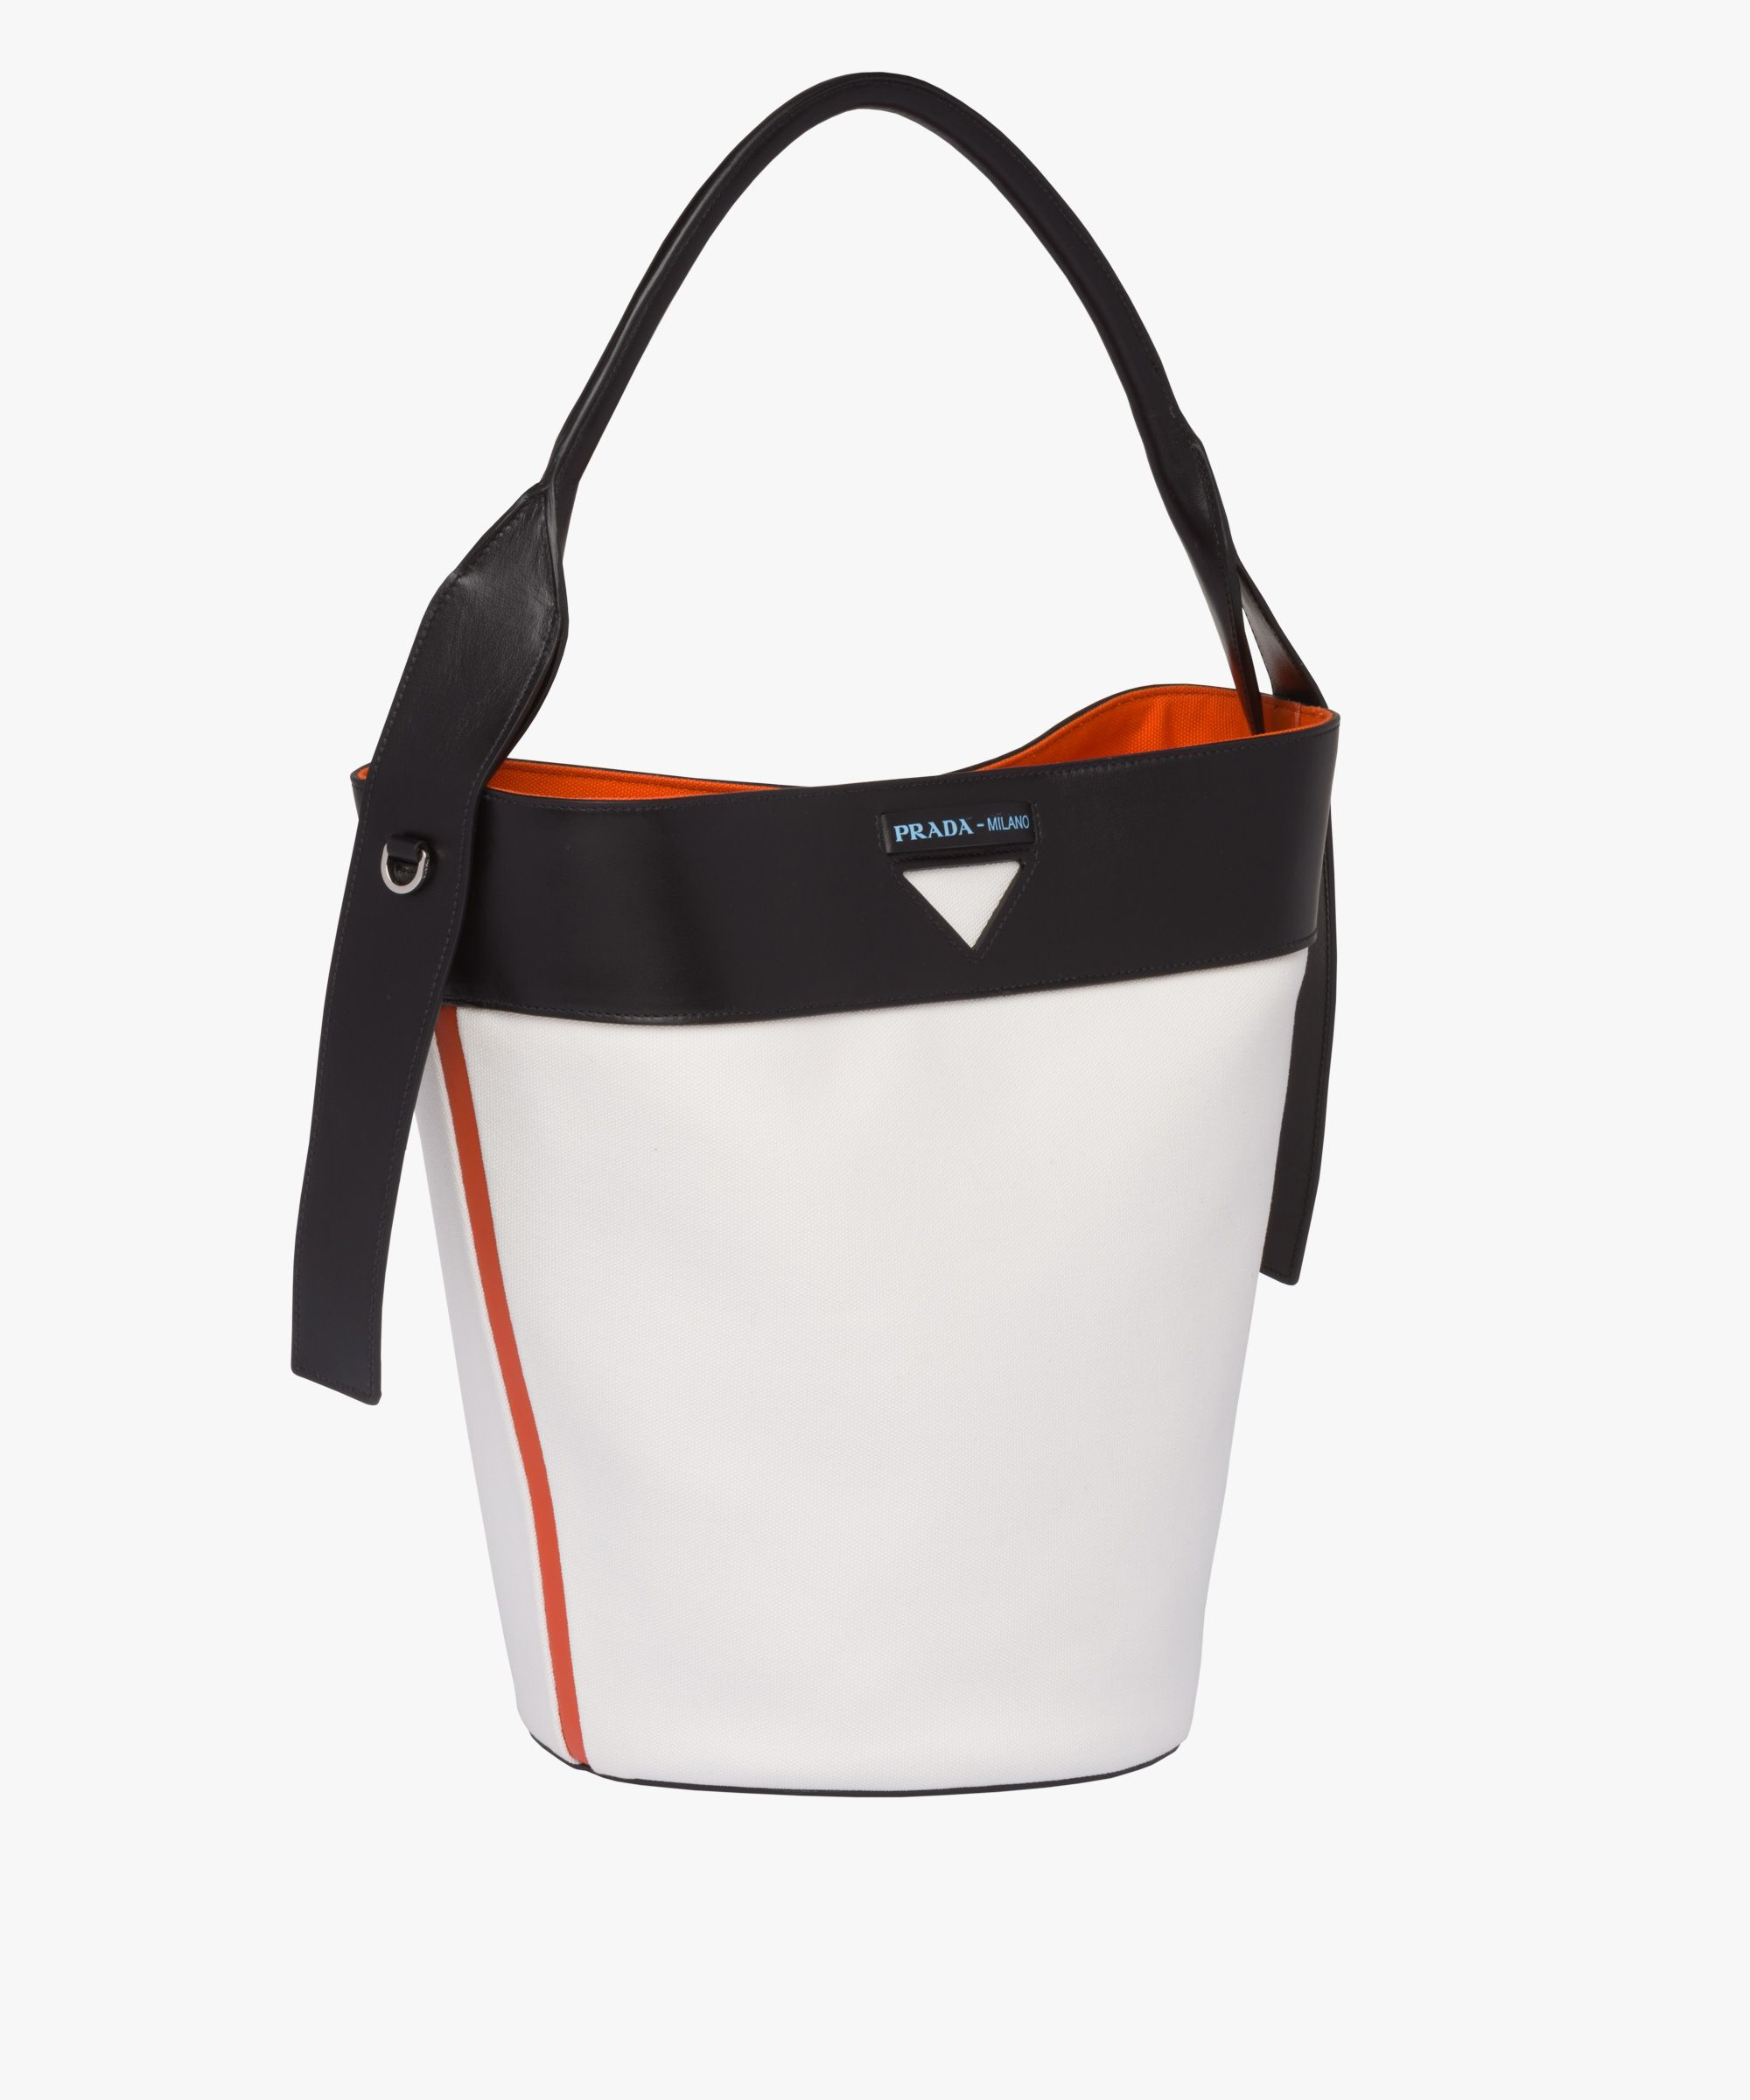 848085ade2 Prada - Prada Ouverture white, black & orange canvas & leather bag ...